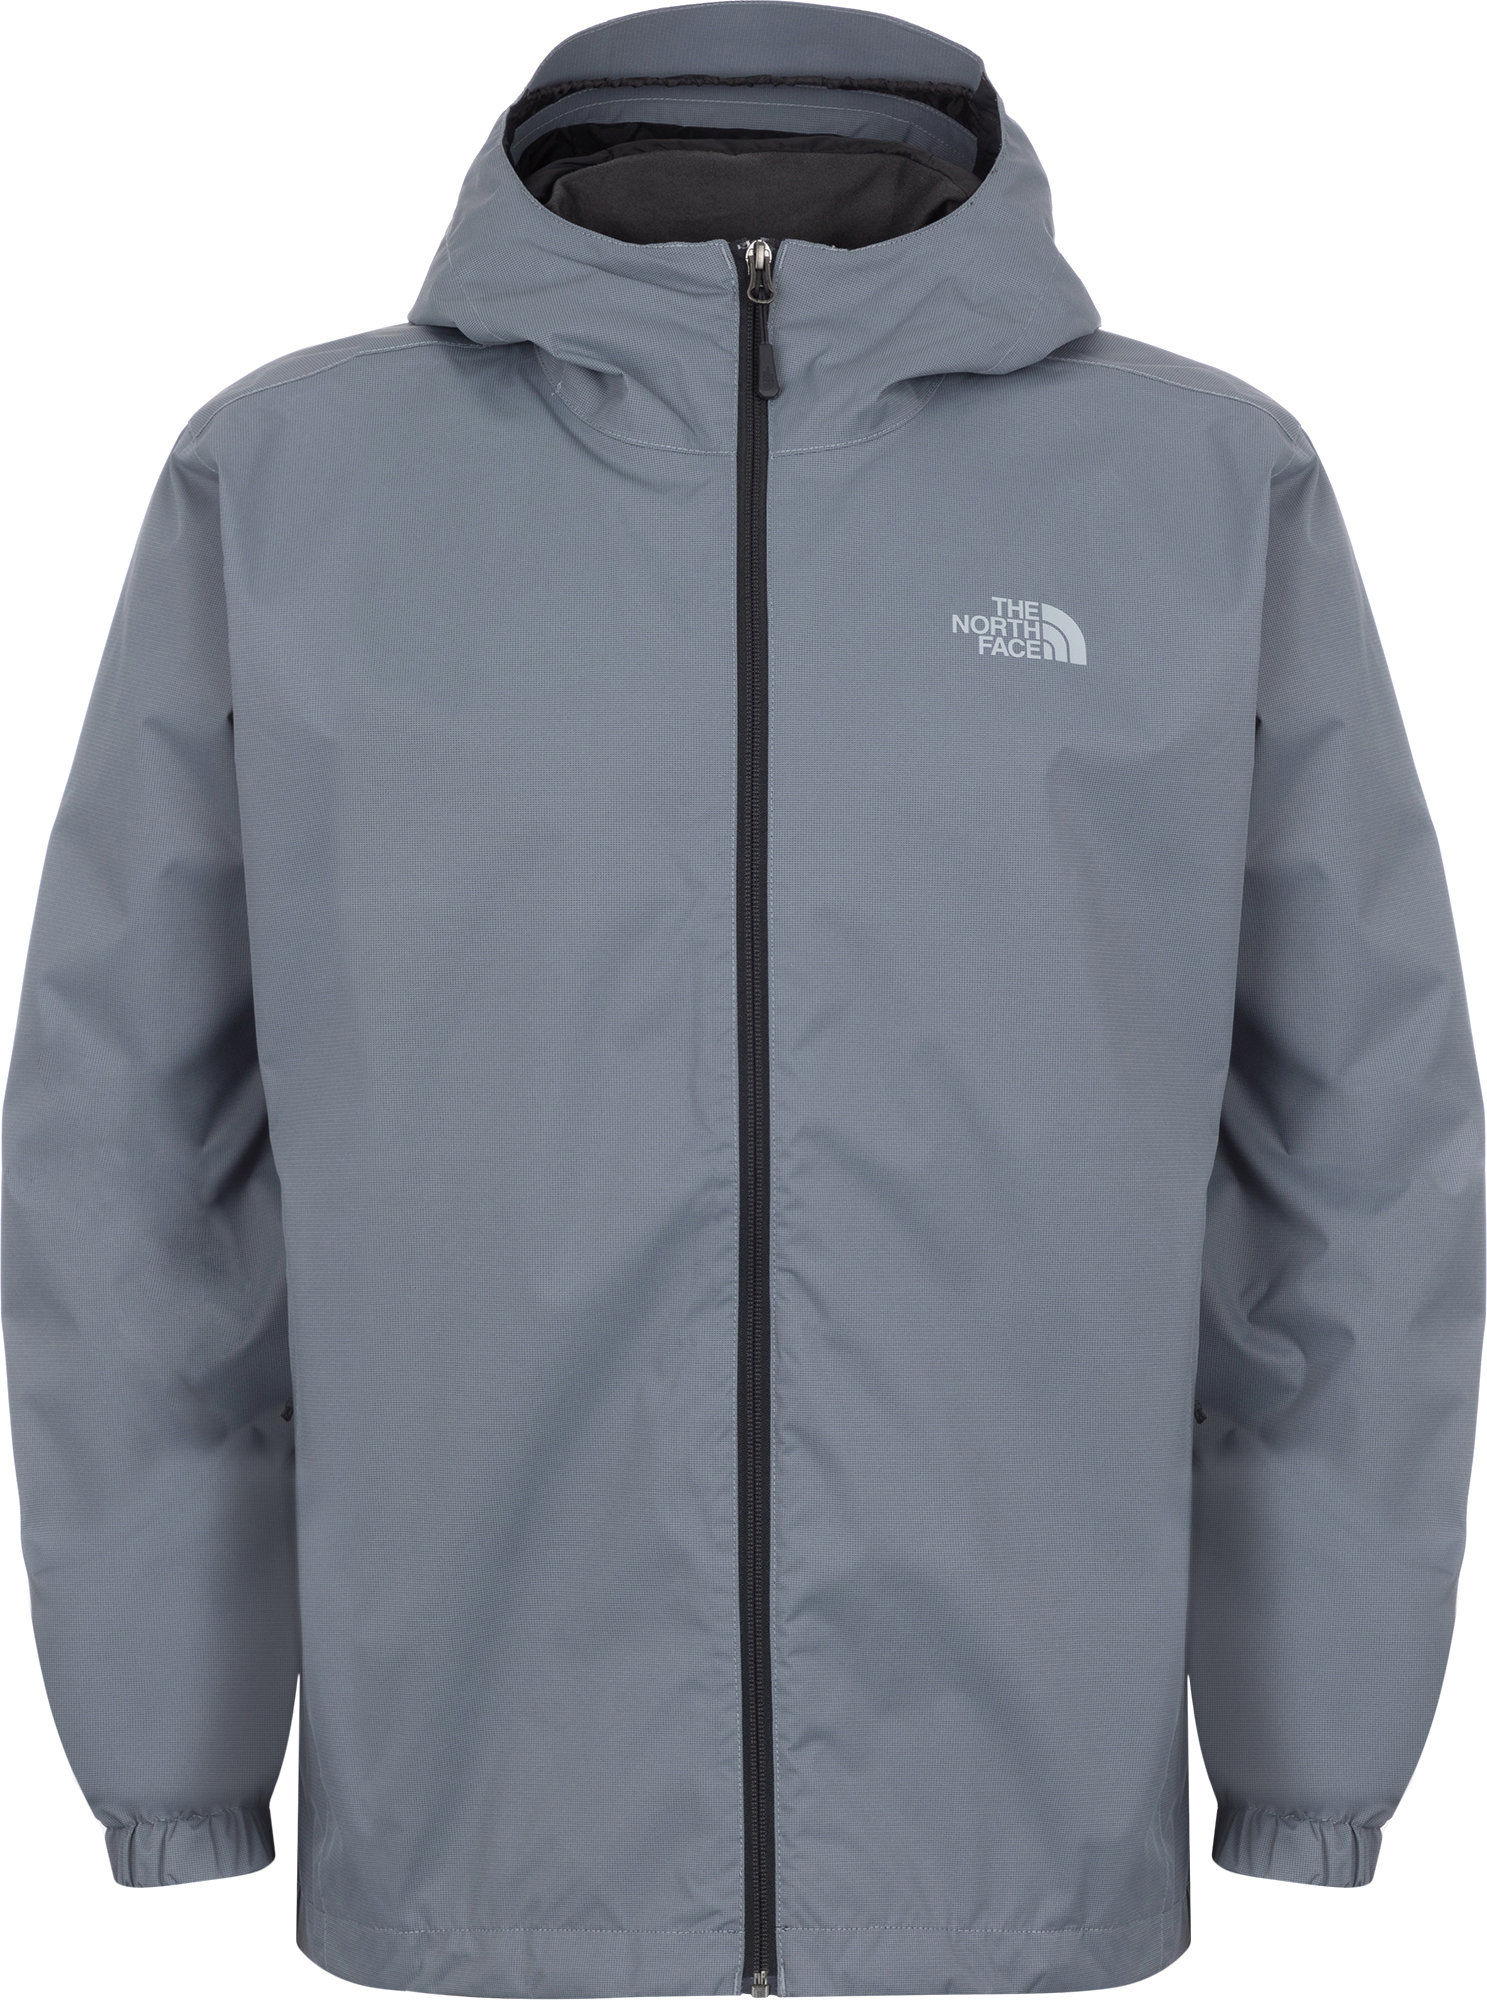 The North Face Ветровка мужская The North Face Quest, размер 52 цена